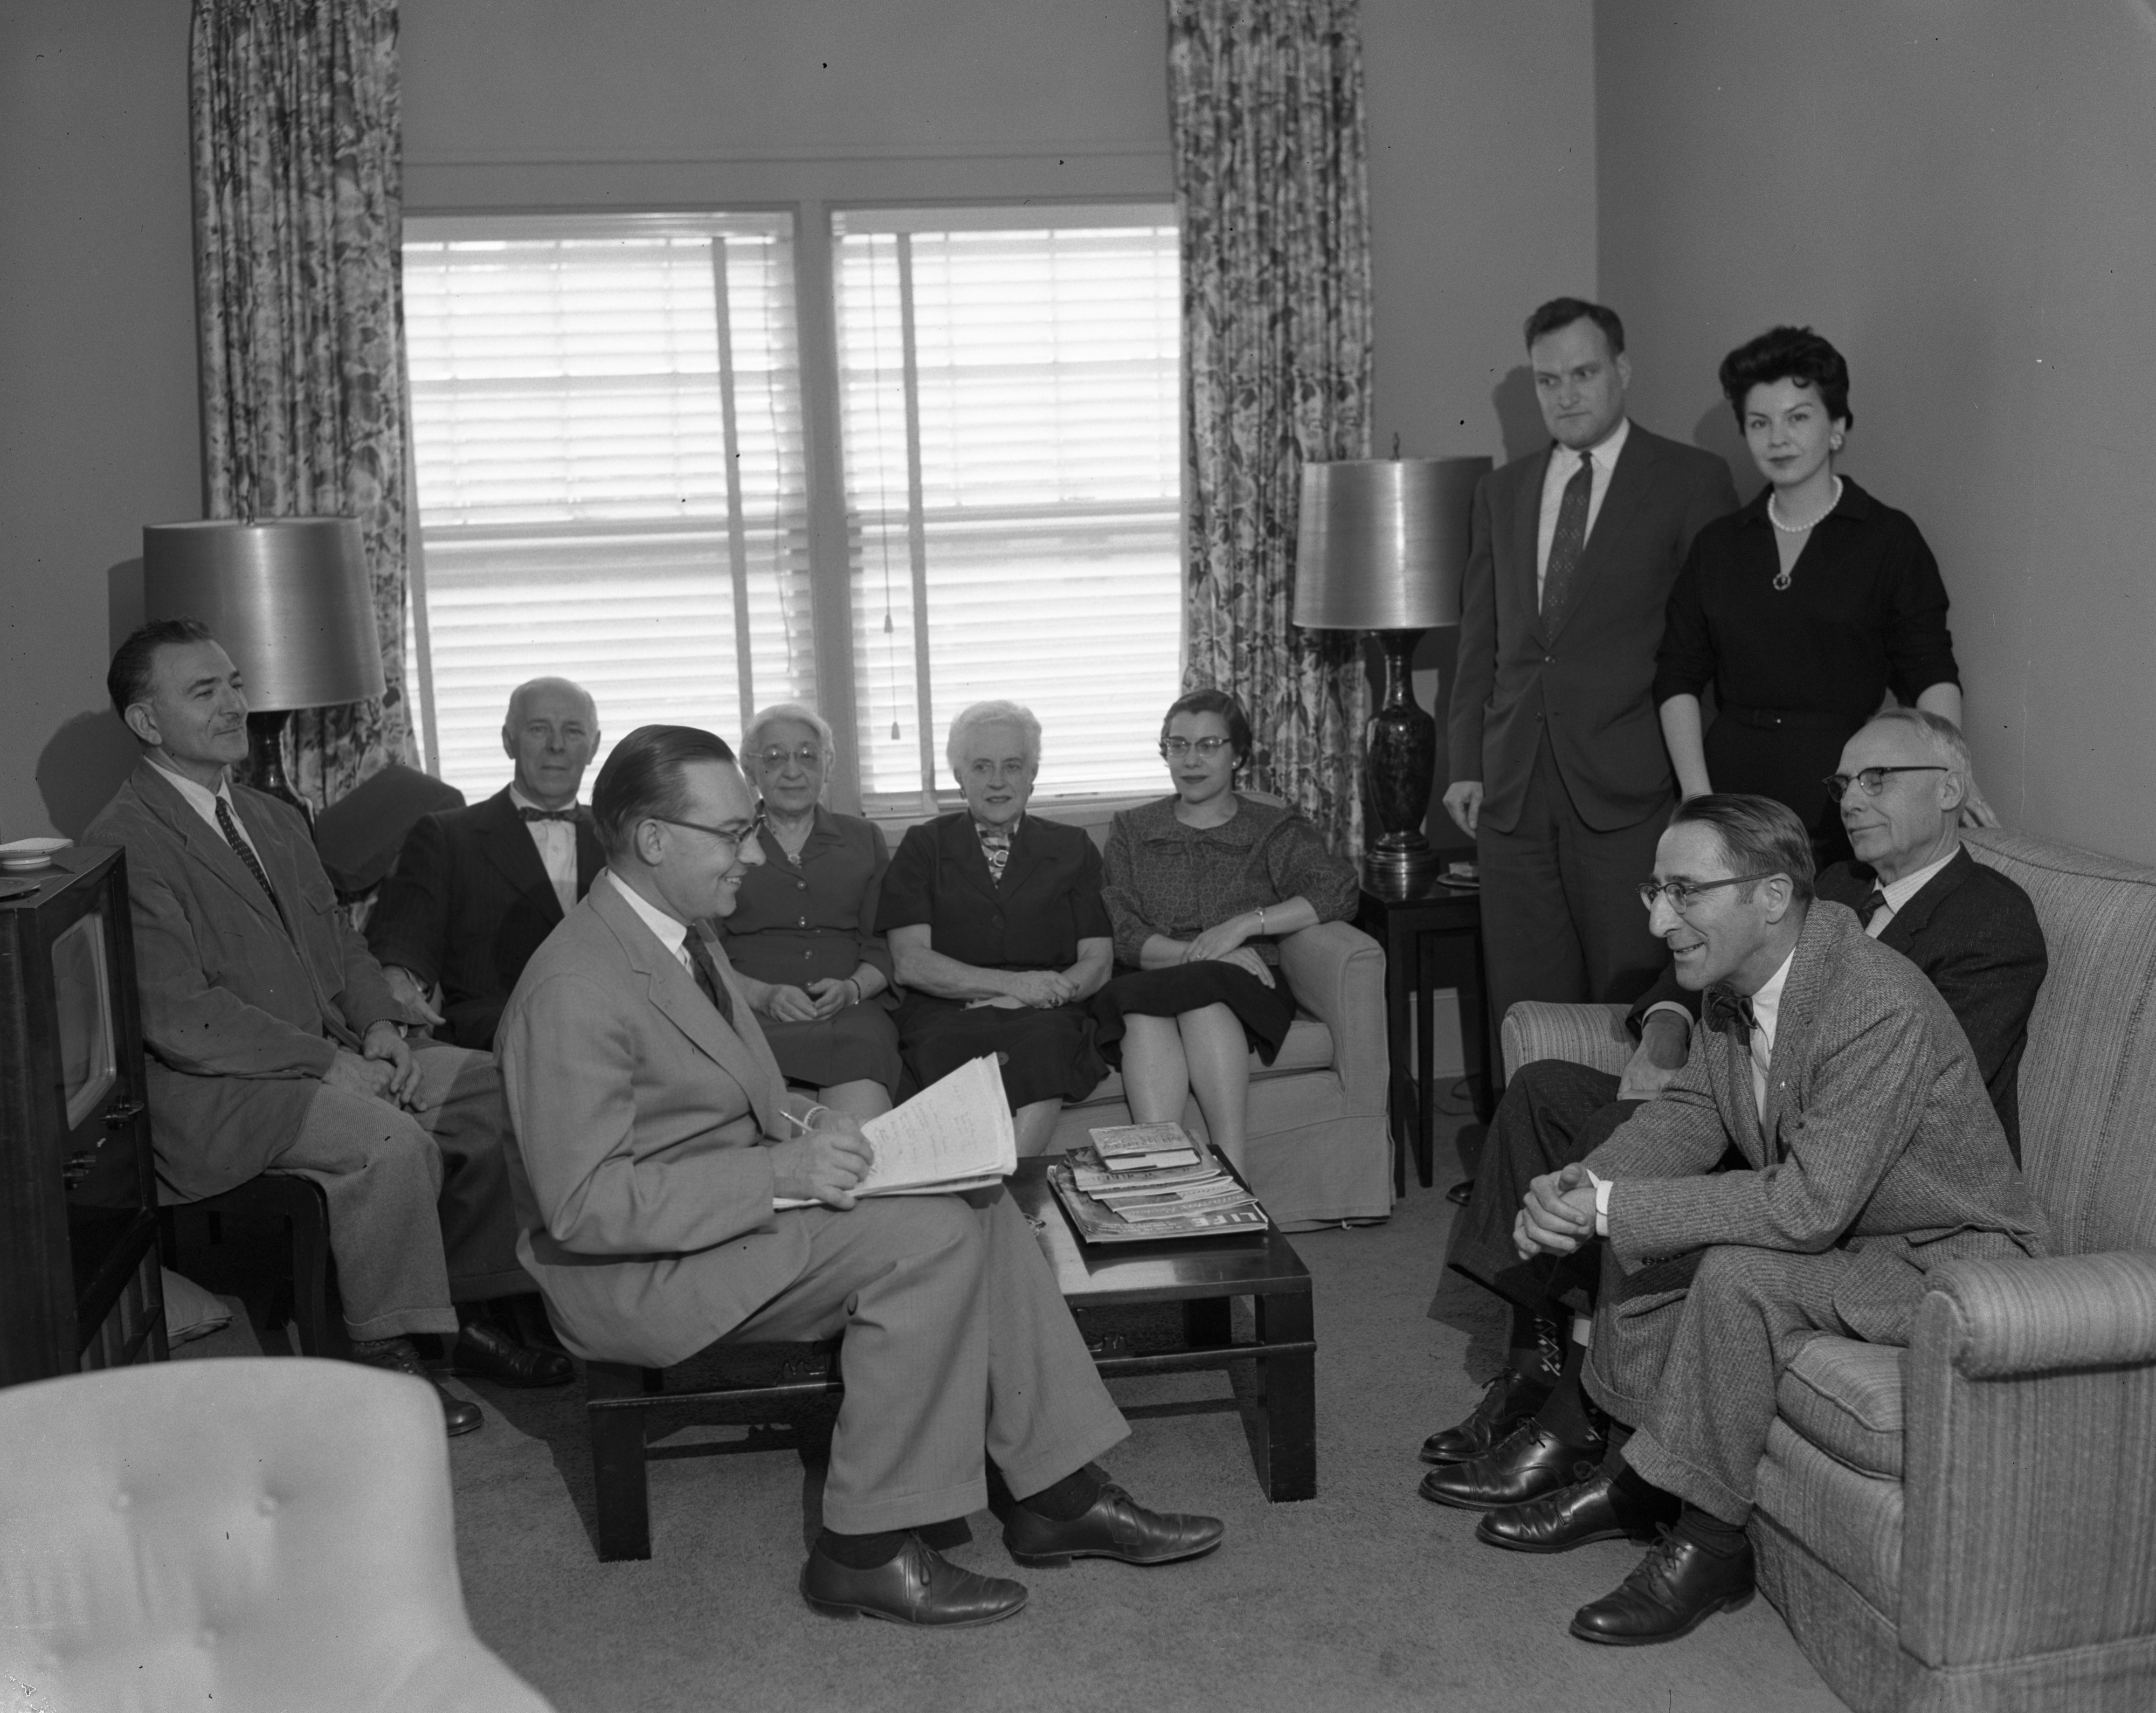 Planners of Human Relations Institute of the National Conference Of Christians and Jews, October 1958 image